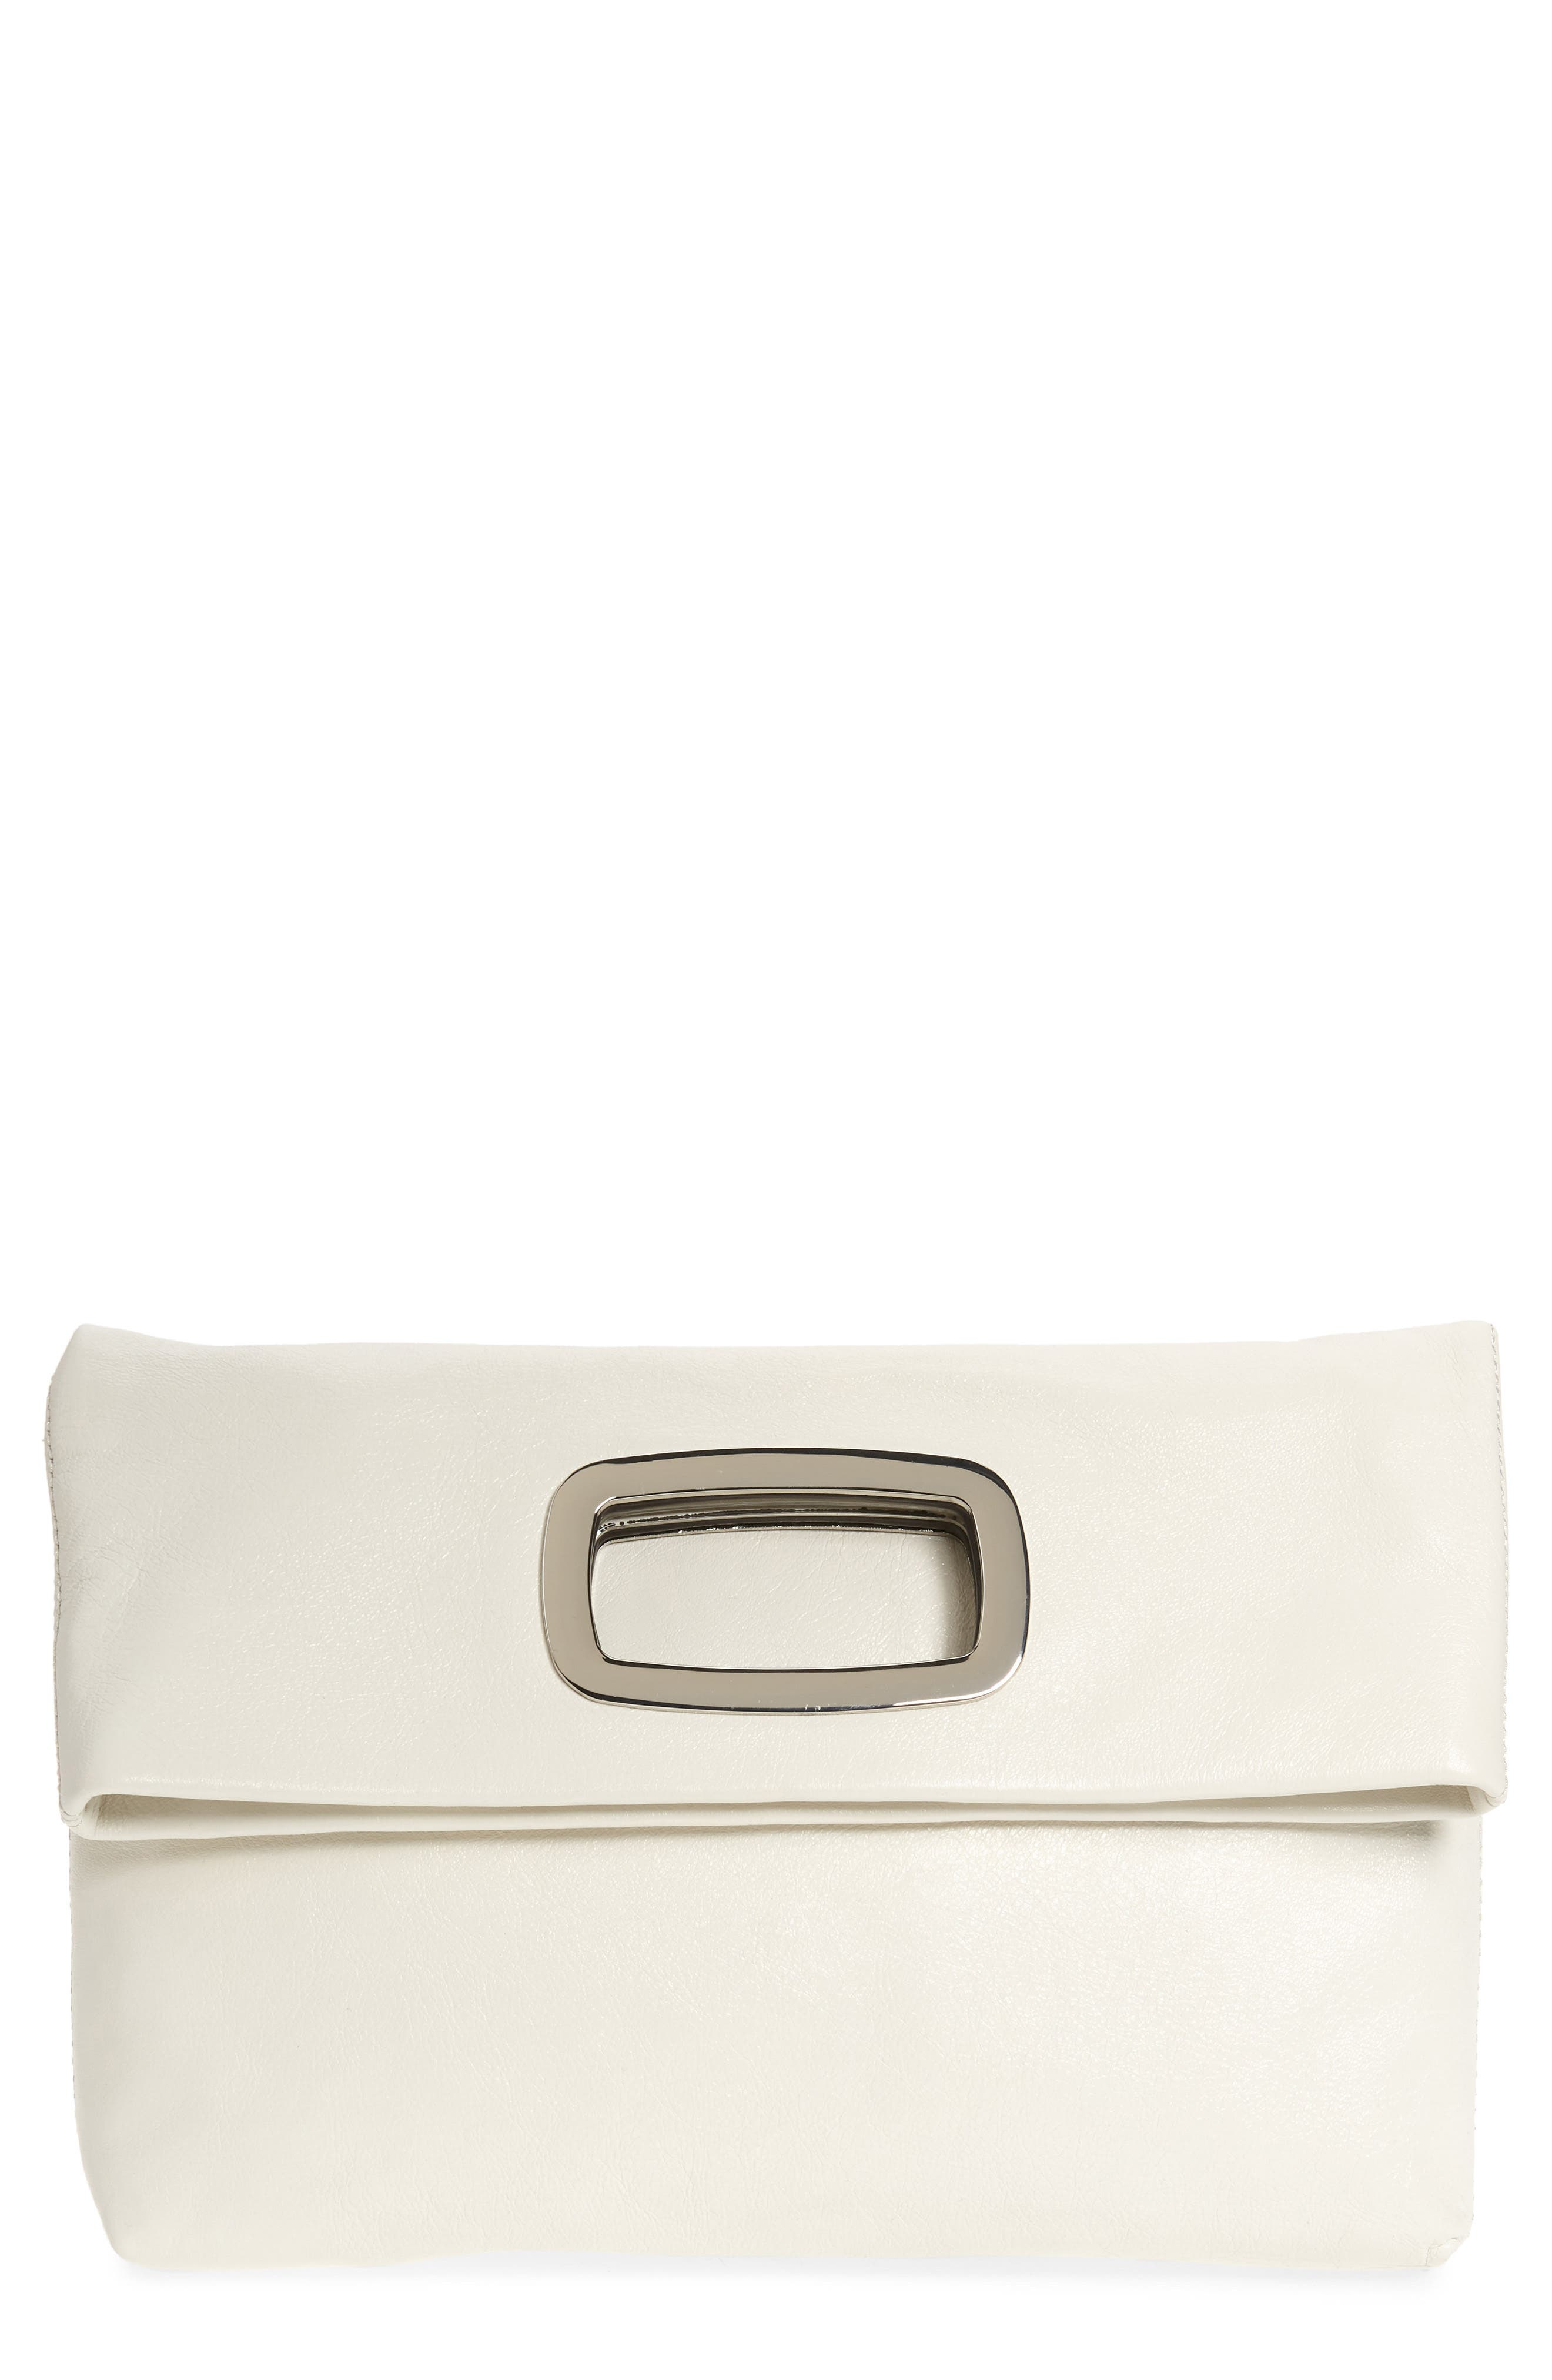 Large Marti Leather Convertible Clutch,                         Main,                         color, SNOW WHITE